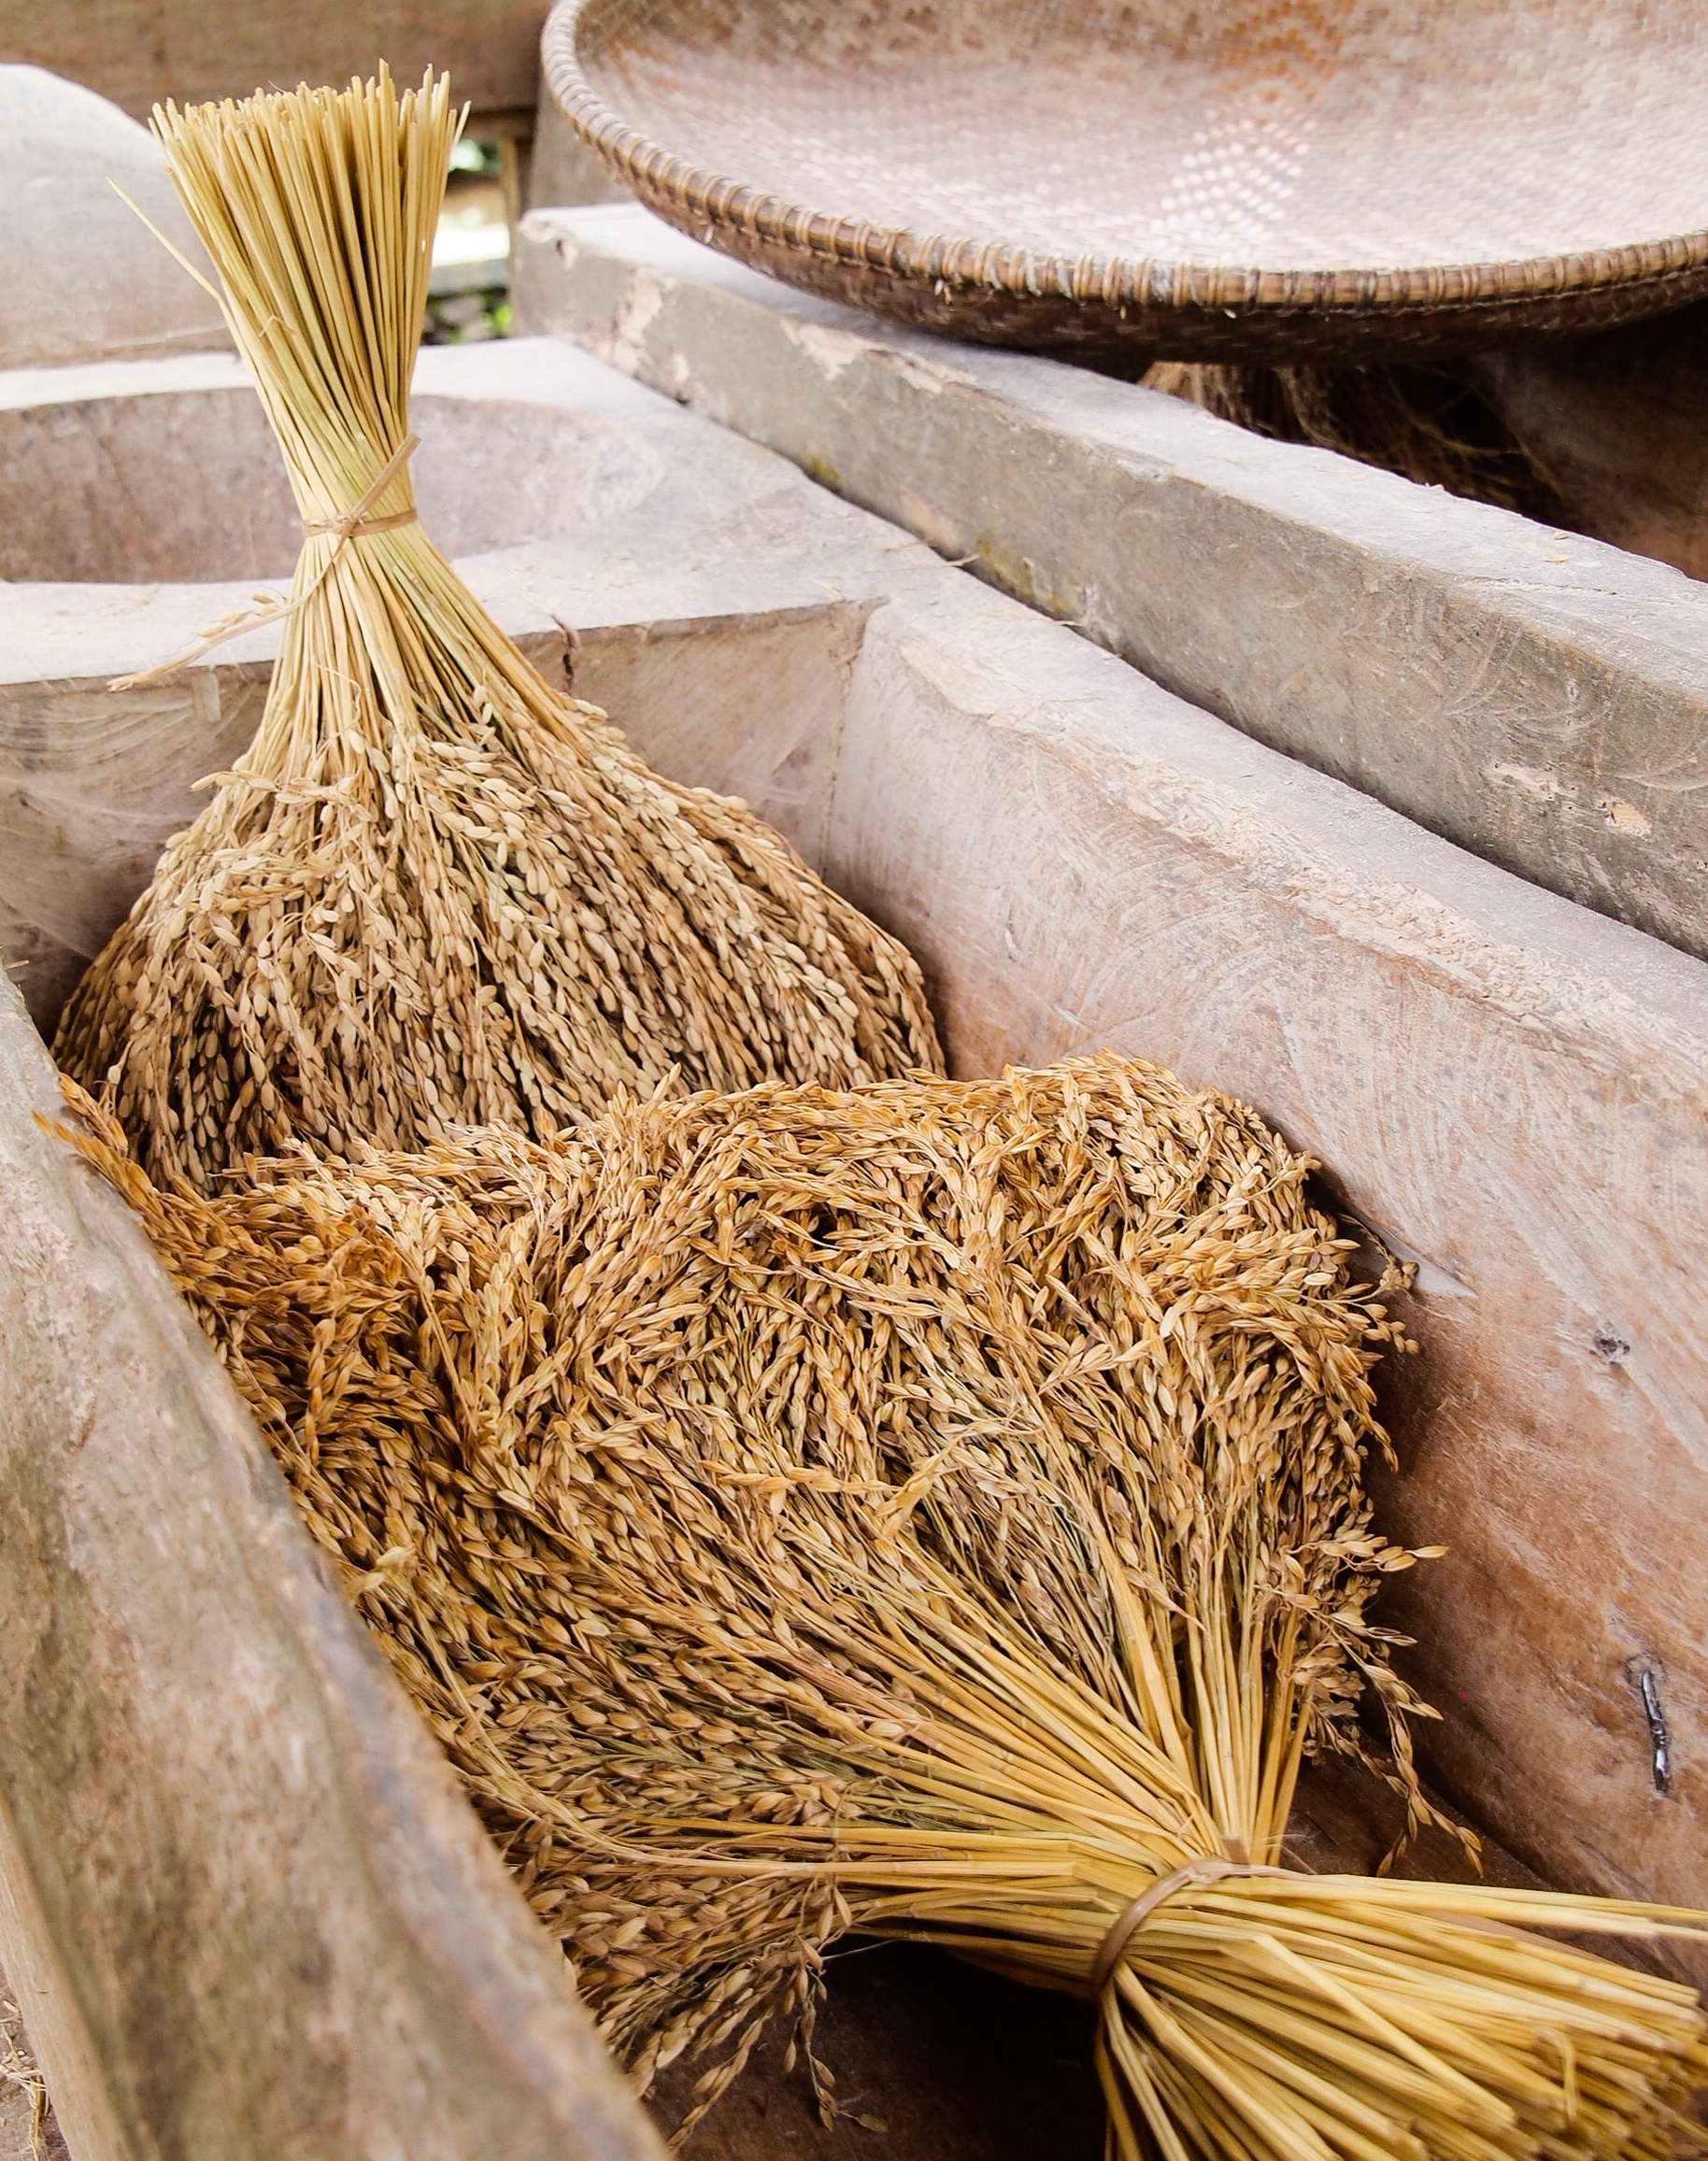 newly harvested rice stalks